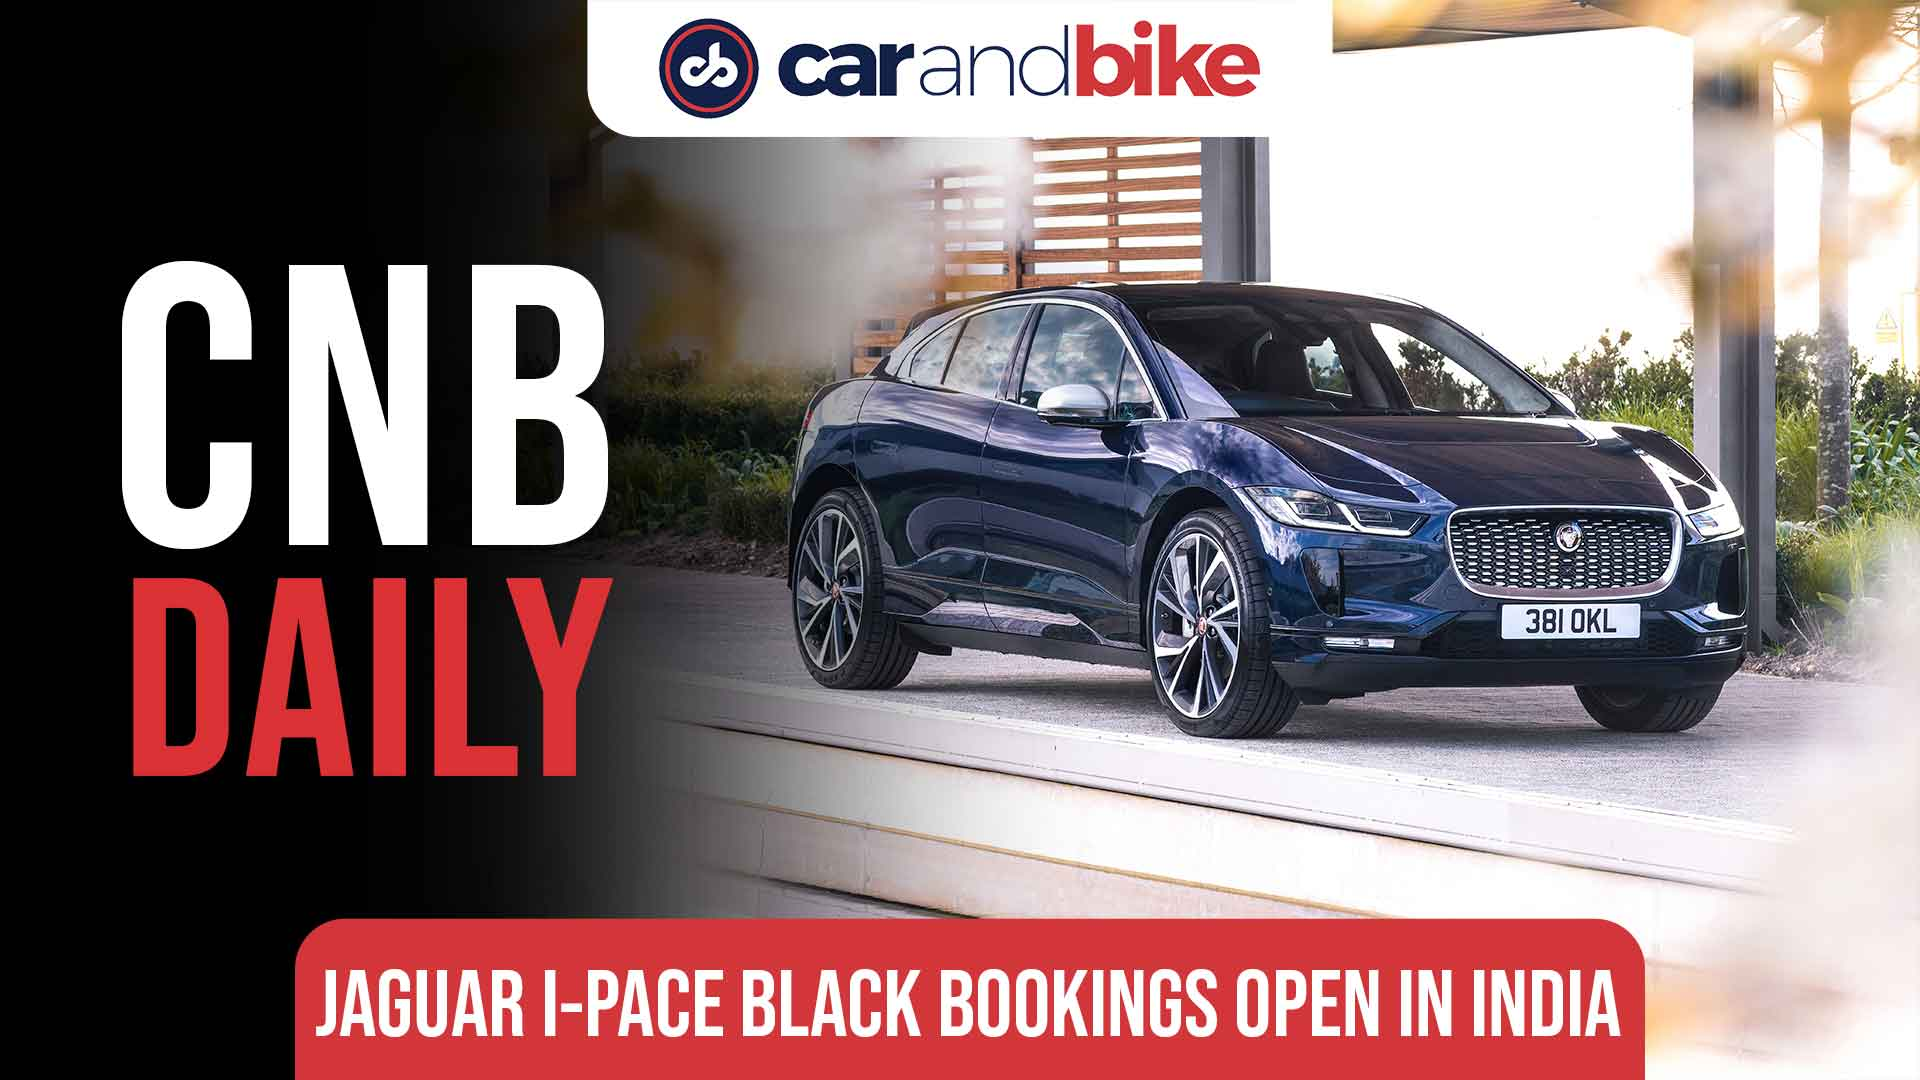 Jaguar I-Pace black bookings open in India